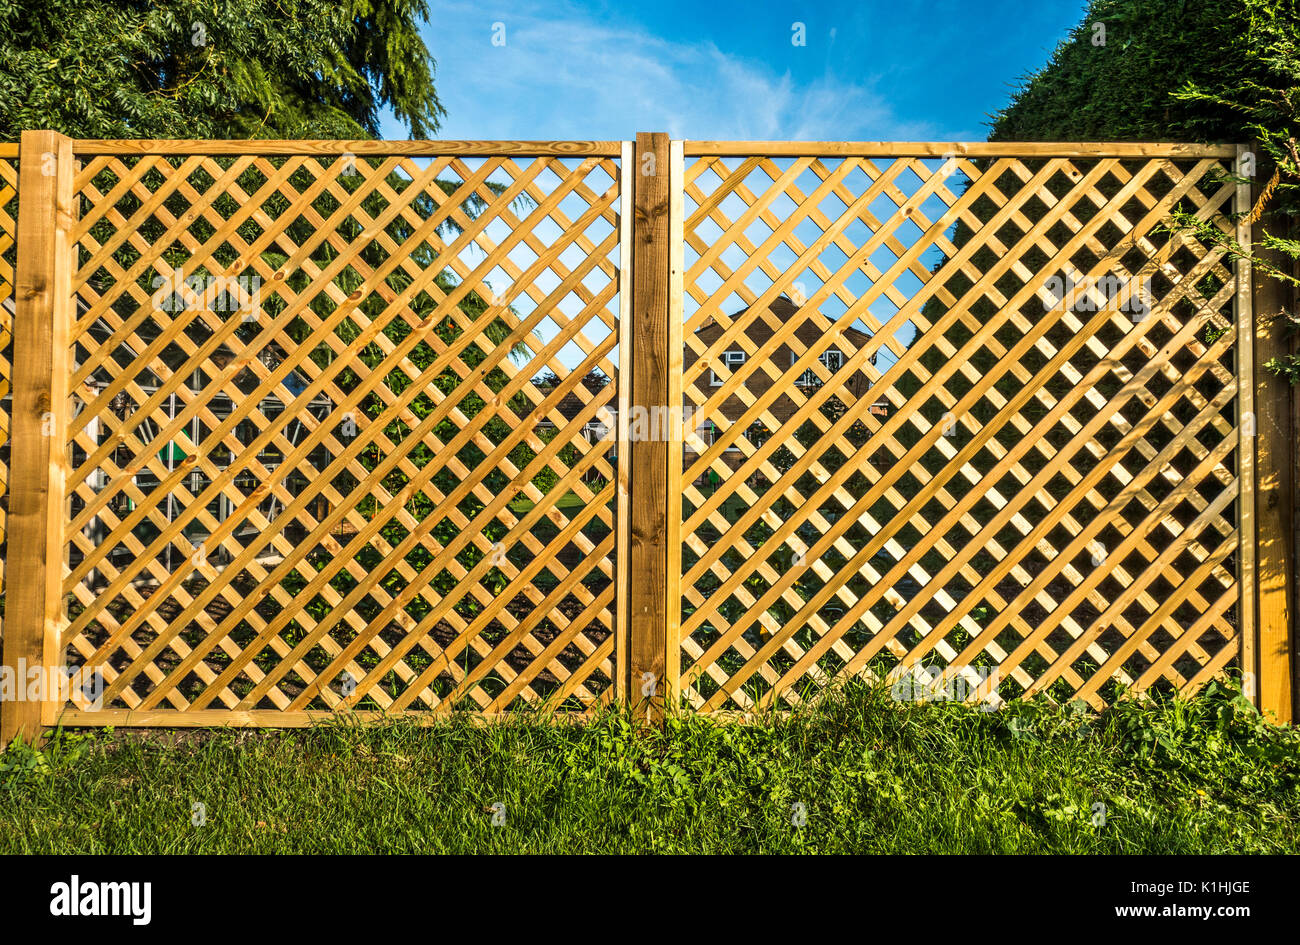 Two see through wooden trellis, boundary fence panels, with